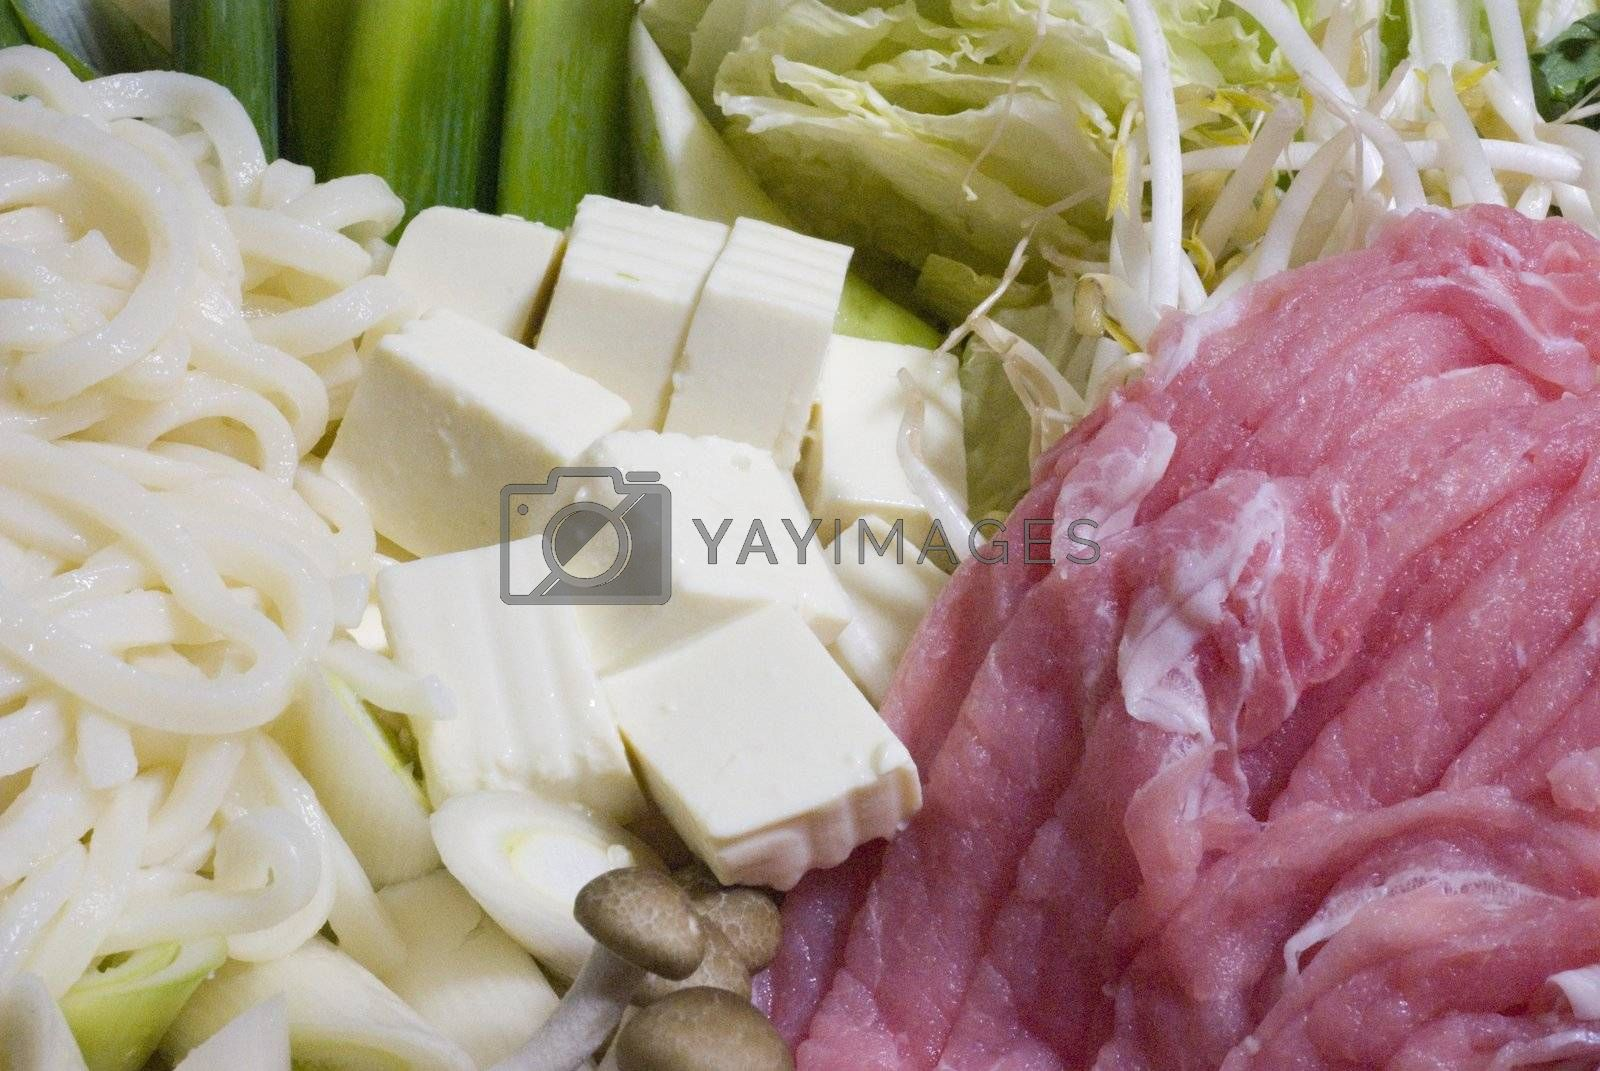 Noodles, tofu, pork and other ingredients spread out prepared for shabu shabu. white and red horizontal